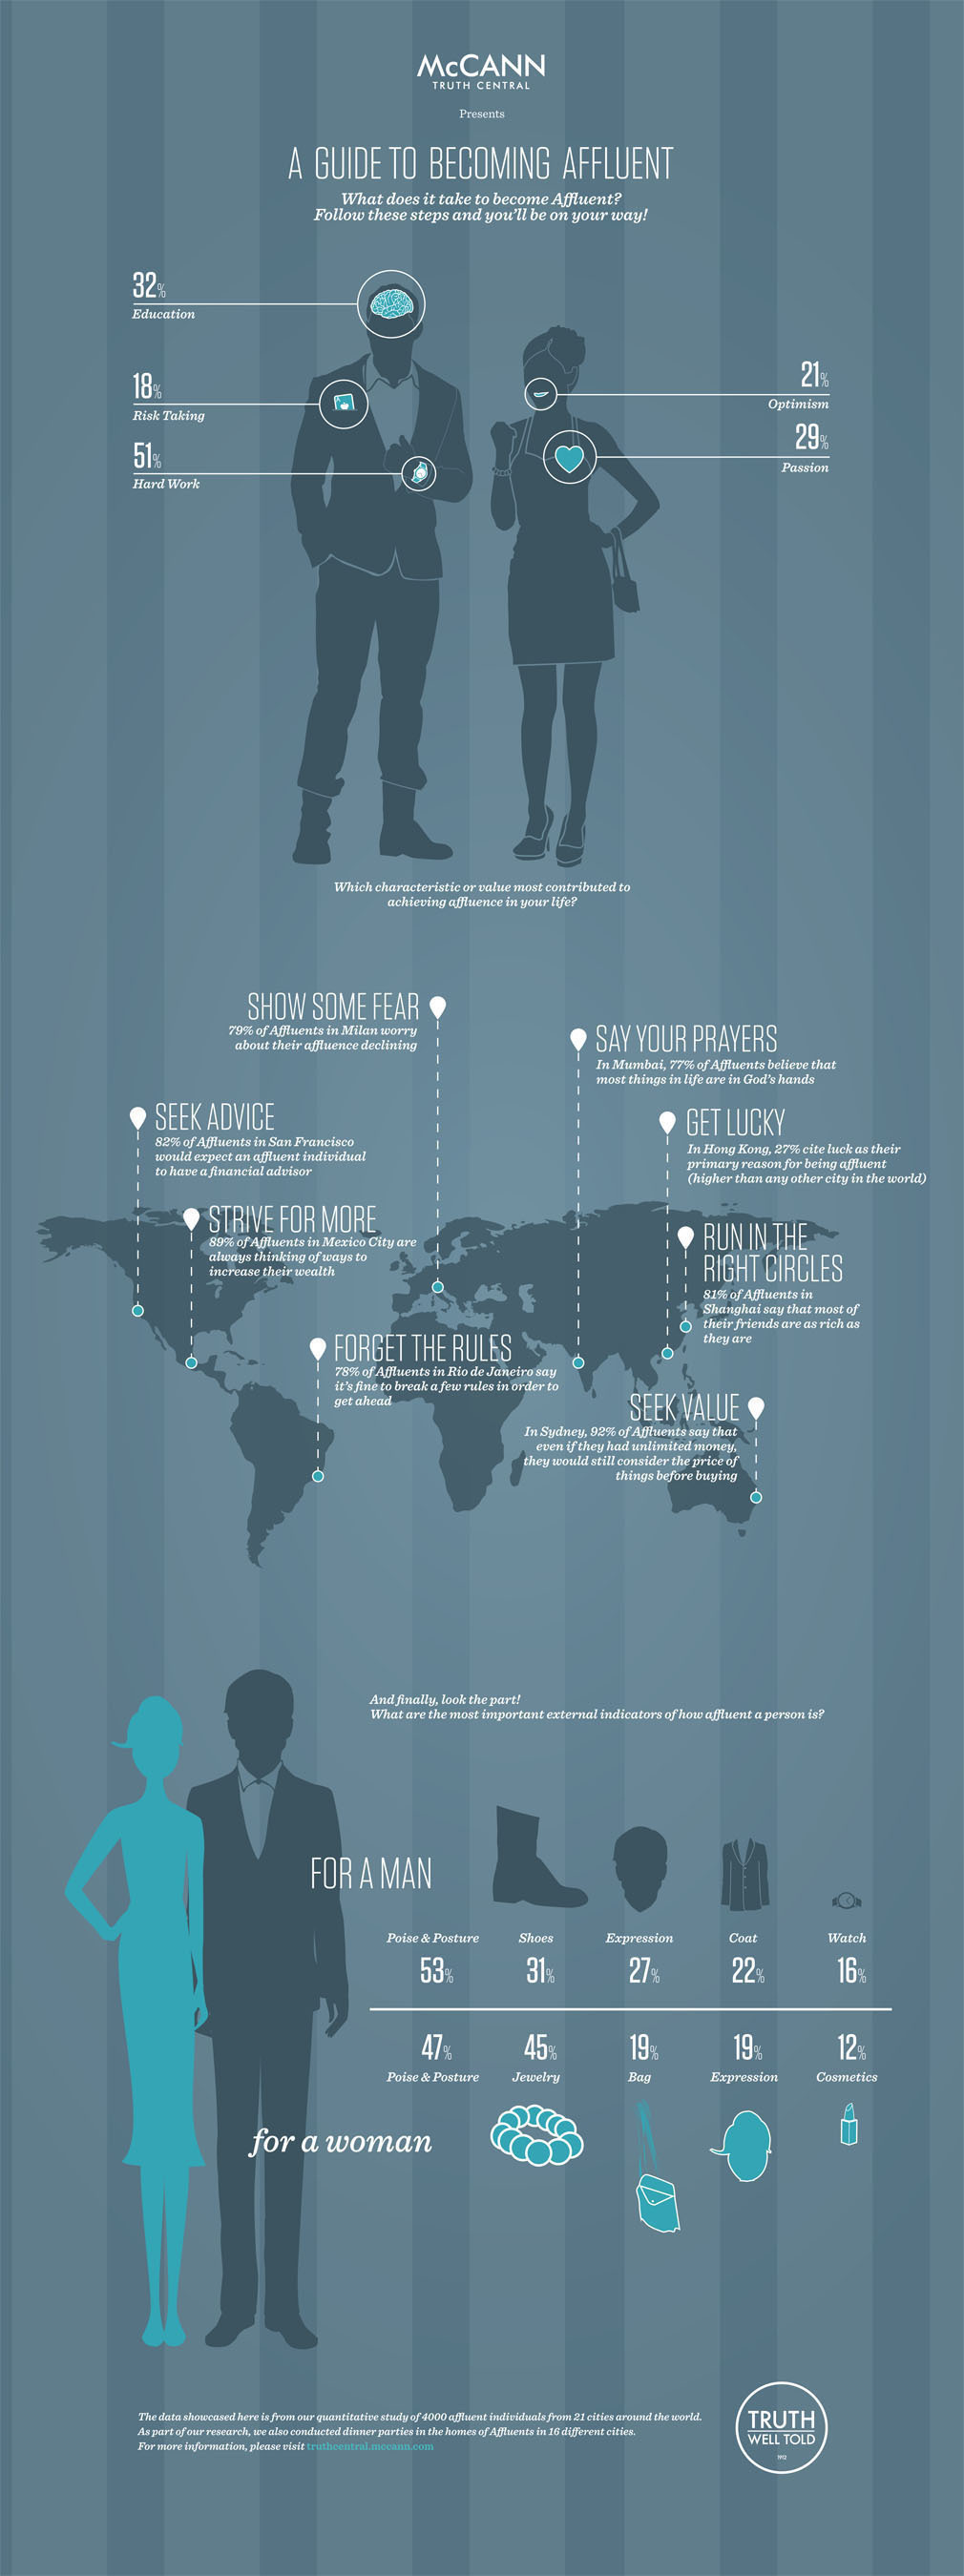 Infographic: McCann Erickson's Global Guide to Becoming Affluent